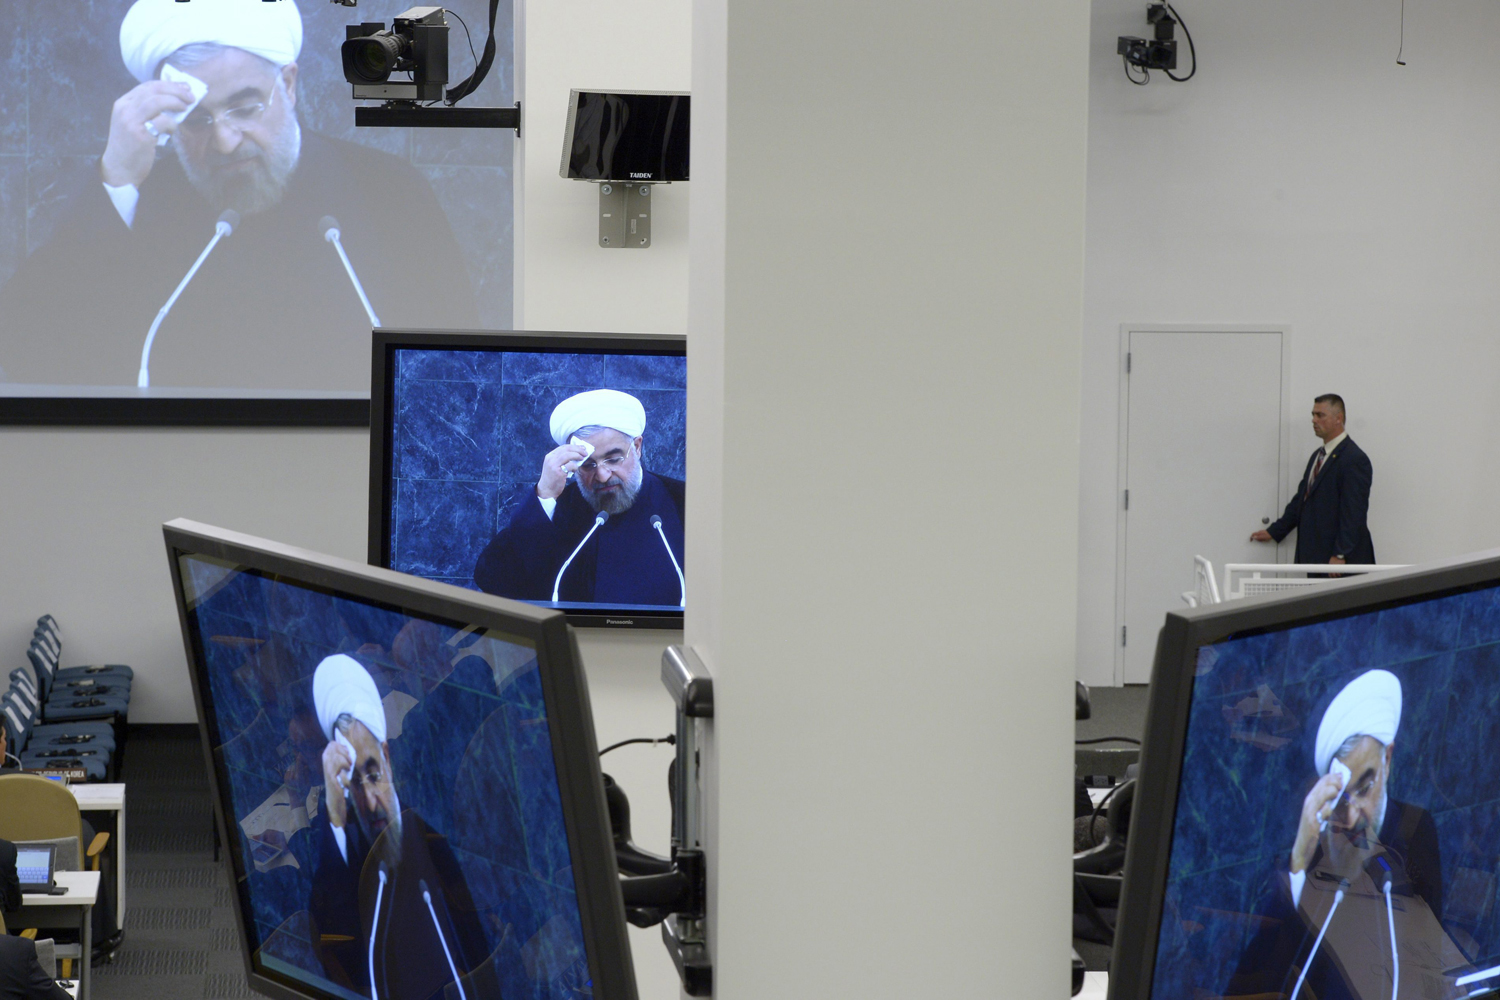 Sept, 24, 2013. Hassan Rouhani, President of Iran, is seen on screens as he speaks during the general debate of the 68th session of the United Nations General Assembly at United Nations headquarters in New York, New York, USA.